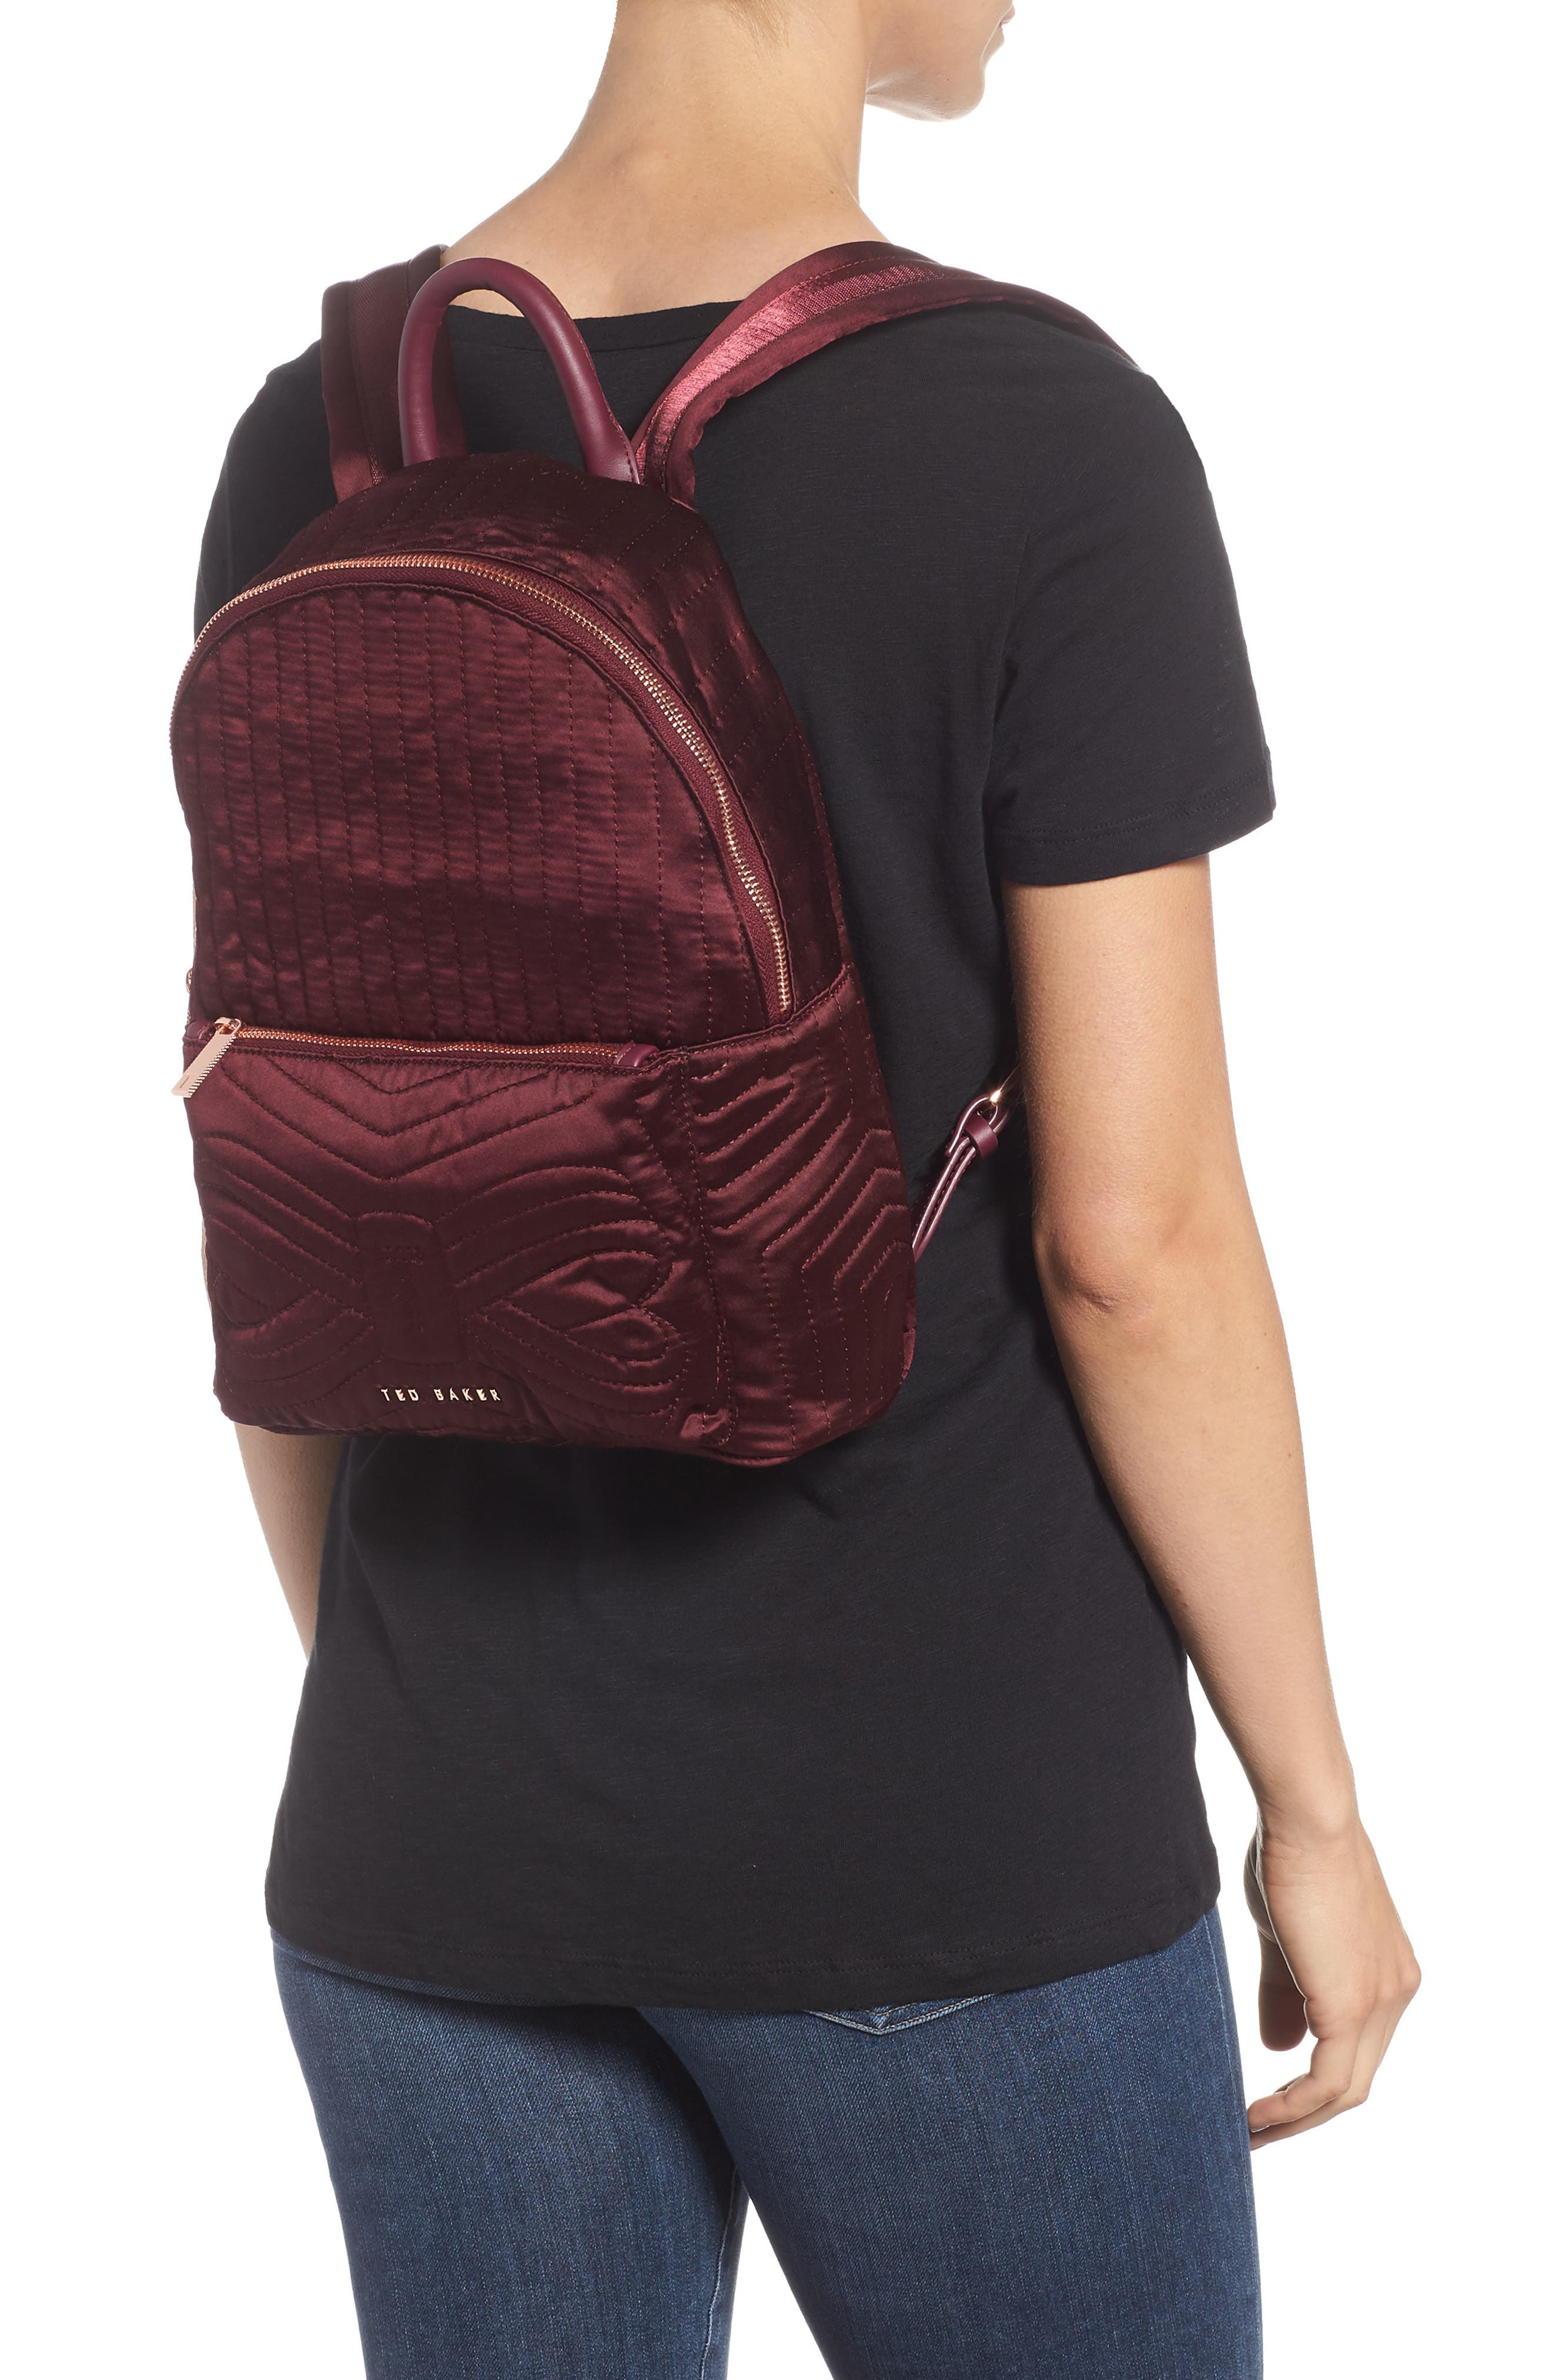 TED BAKER LONDON,                             Quilted Bow Backpack,                             Alternate thumbnail 2, color,                             210